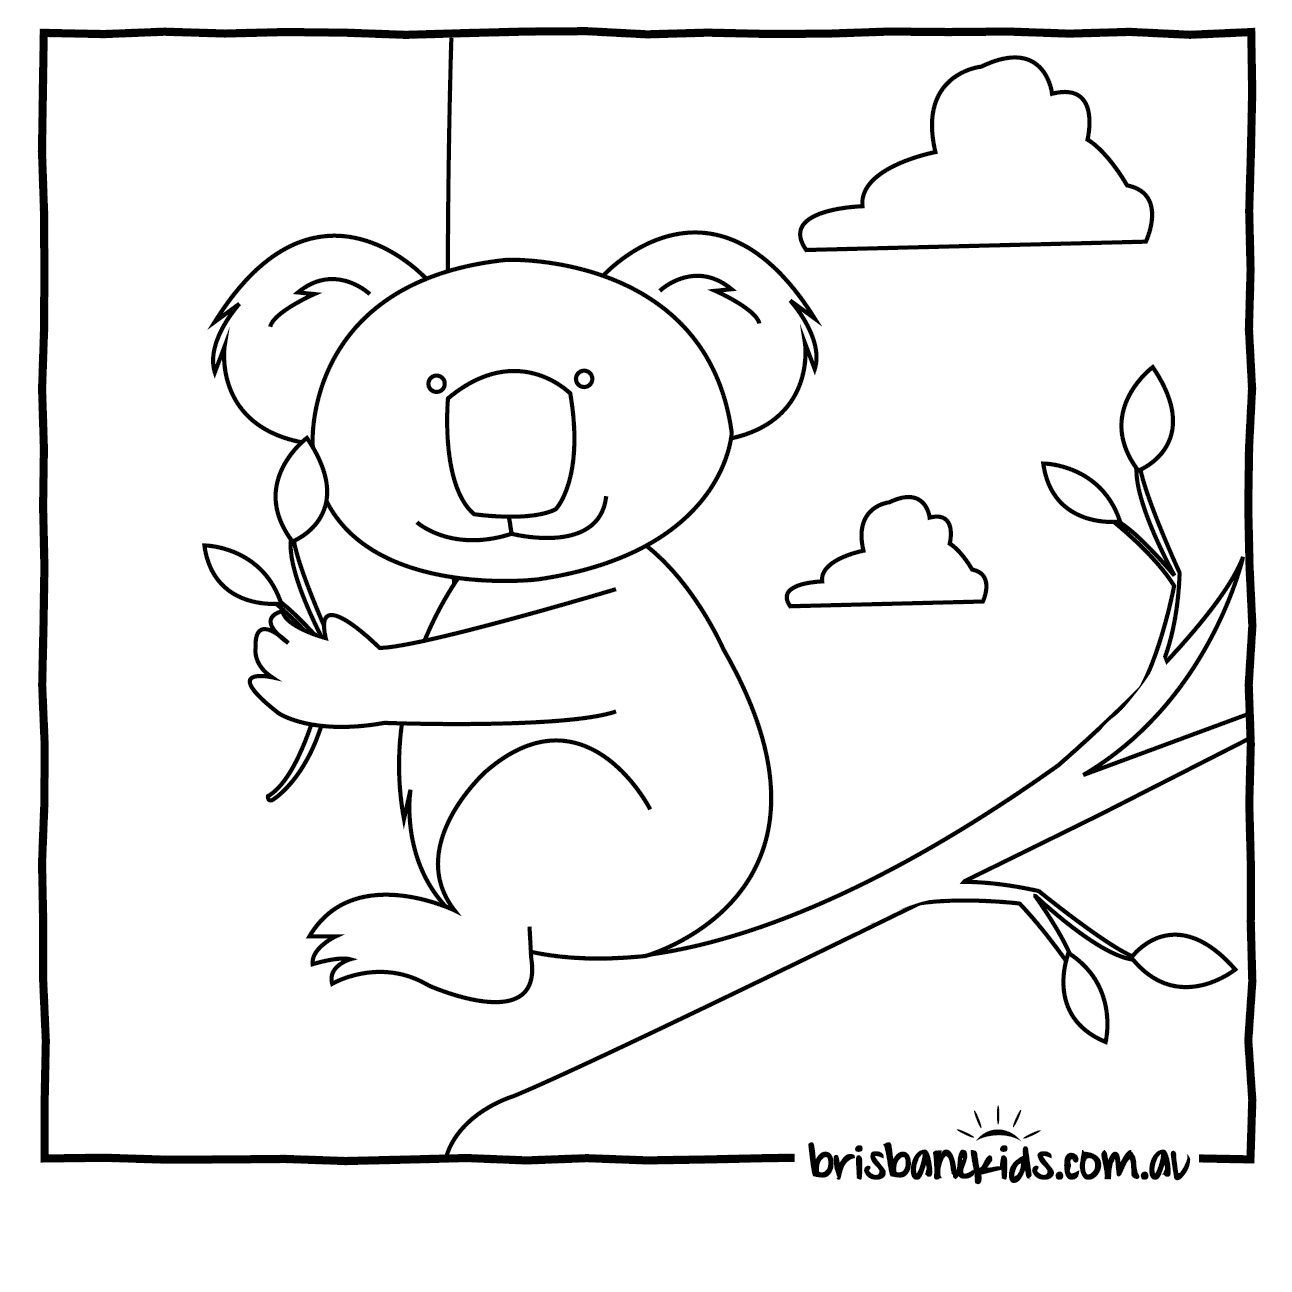 koala colouring in - Picture For Colouring